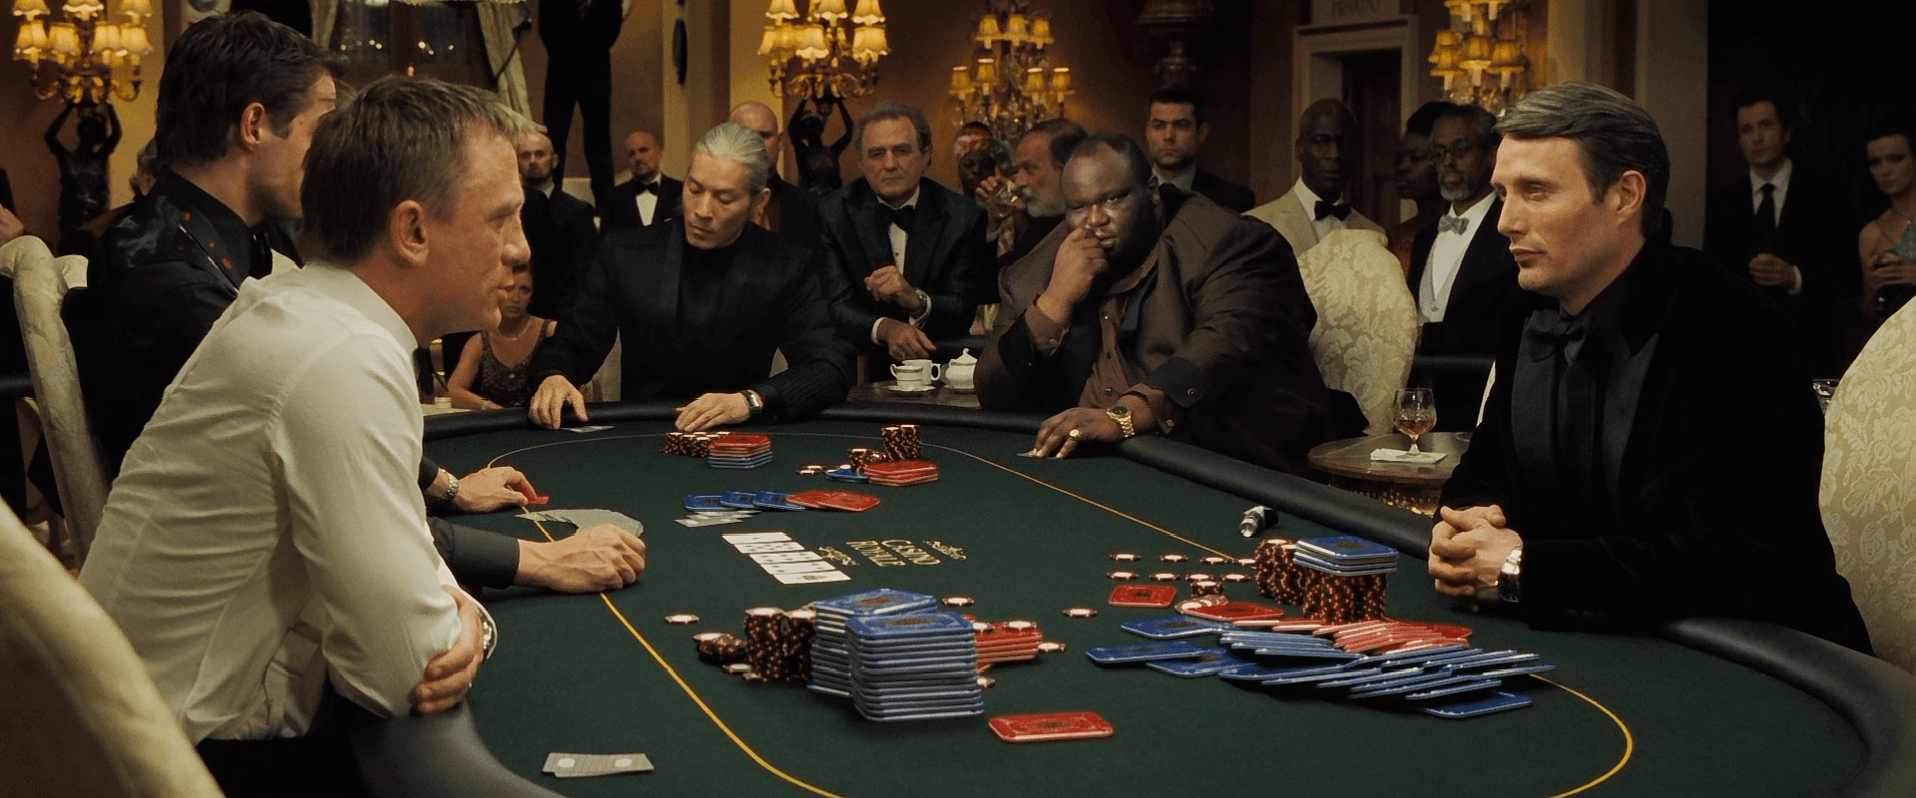 poker movie